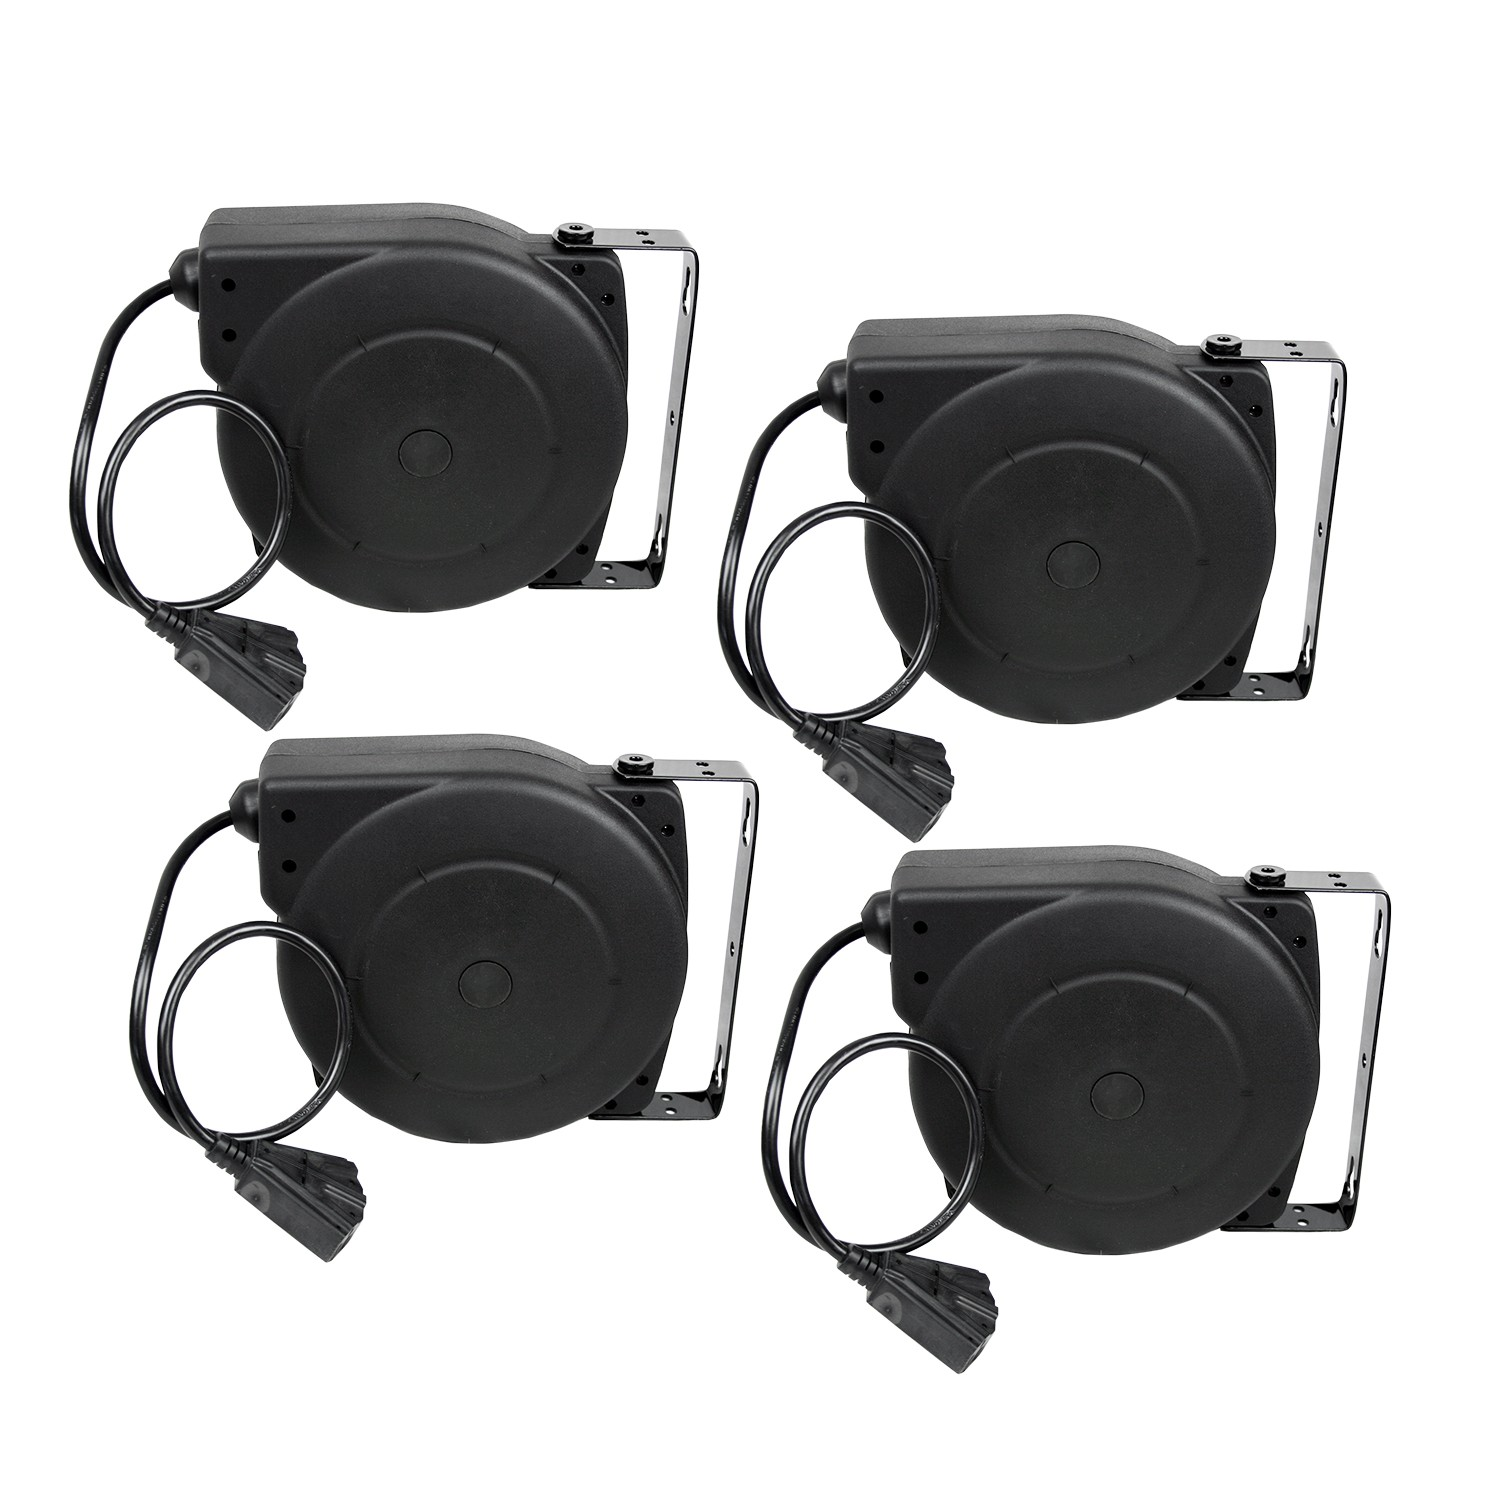 Retractable Extension Cord Reel >> Details About Alemite 7262 A 40 Feet 12 3 Retractable Extension Cord Reel 4 Pack